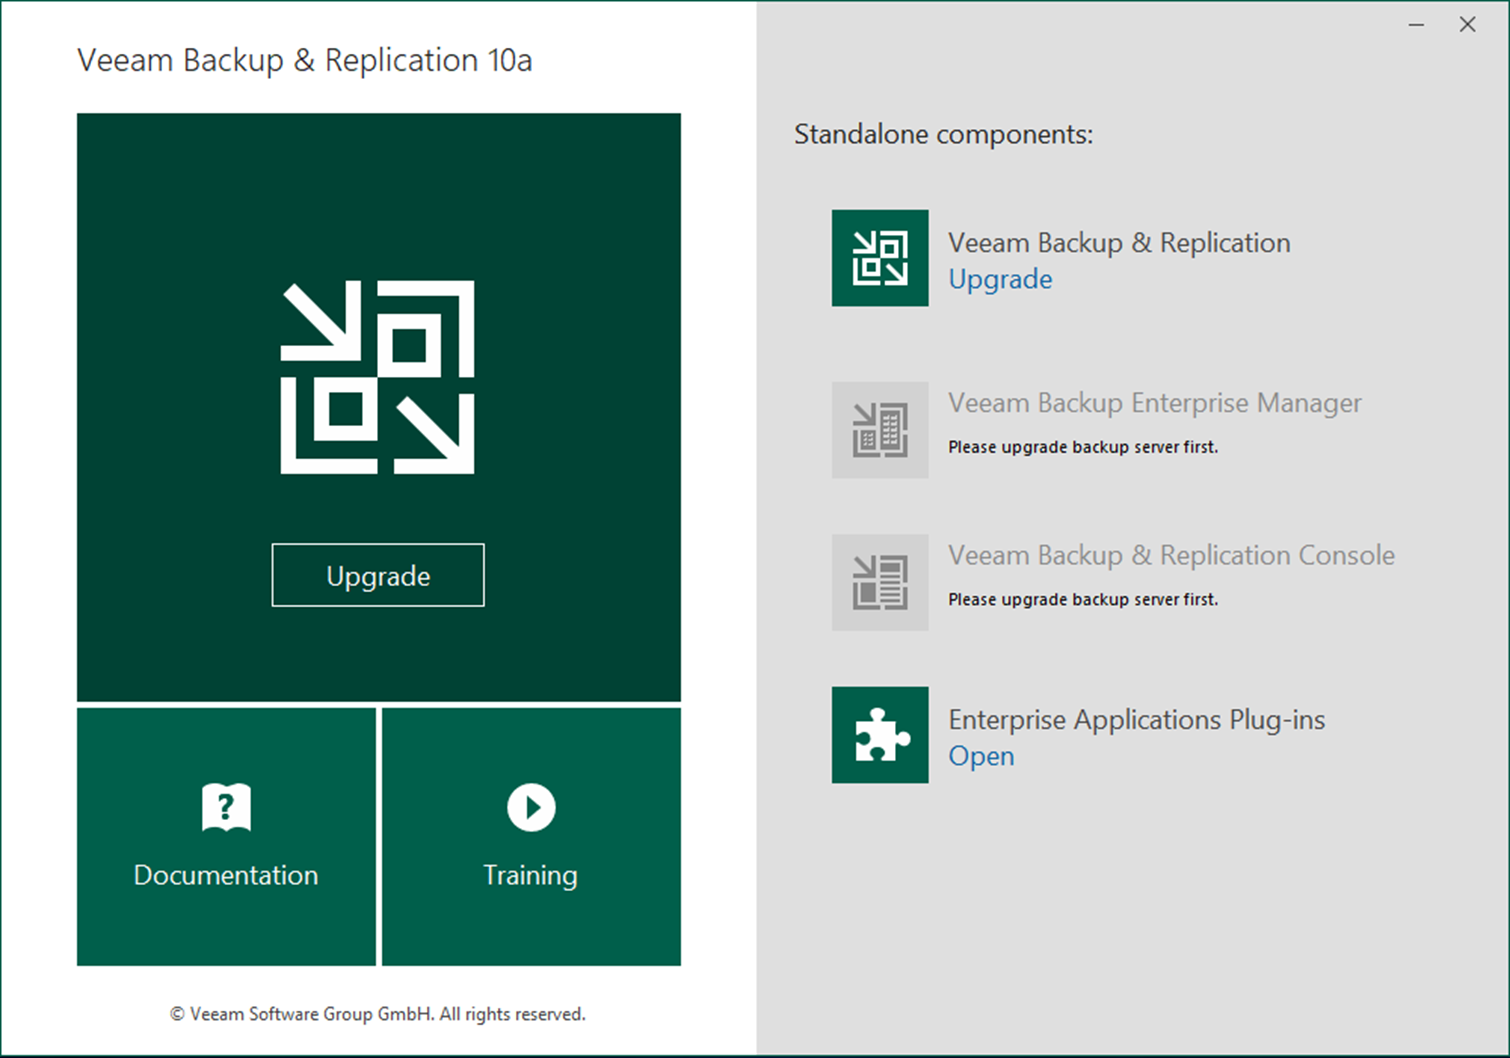 100320 1854 HowtoInstal7 - How to Install (Upgrade) Veeam Backup and Replication V10a #Veeam #VBR 10a #Hyper-V #WINDOWSERVER #Azure #AWS #NAS #VMWARE #vCloud #Azure Stack #Linux